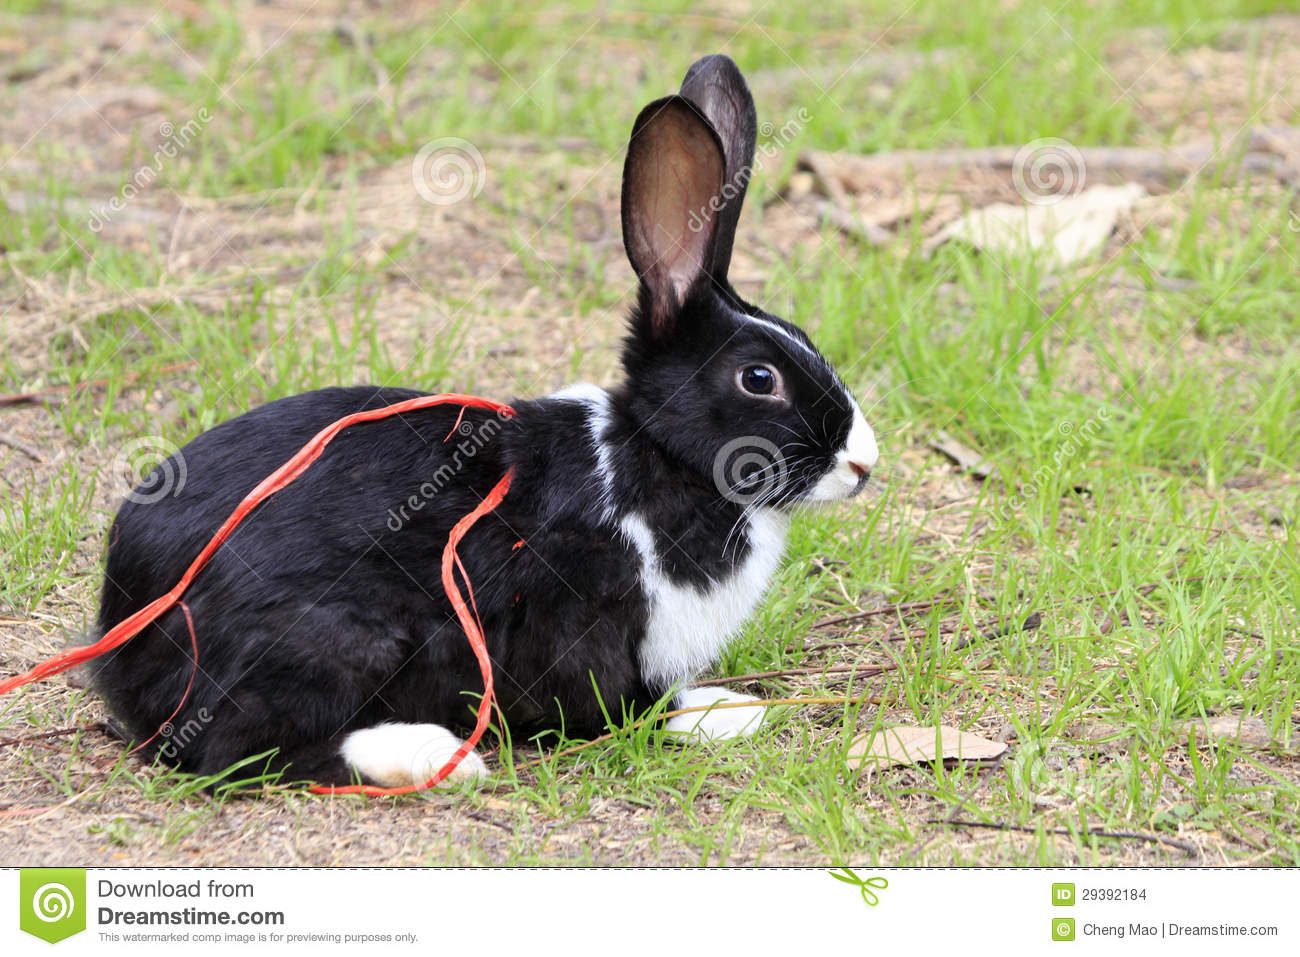 Rabbit Bunny Black And White Stock Images - Image: 29392184